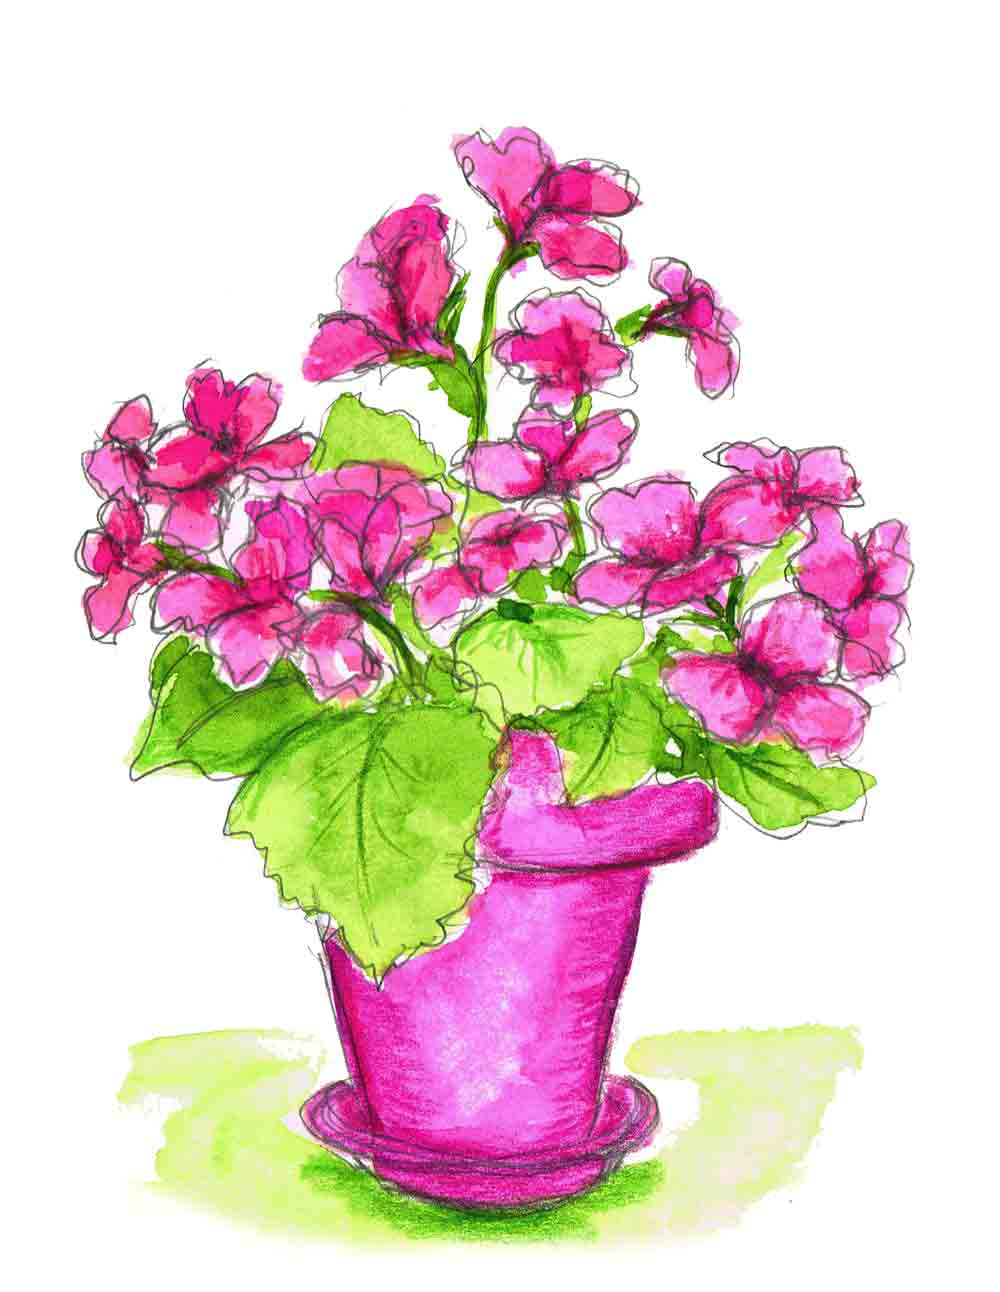 Plants in pots no 14